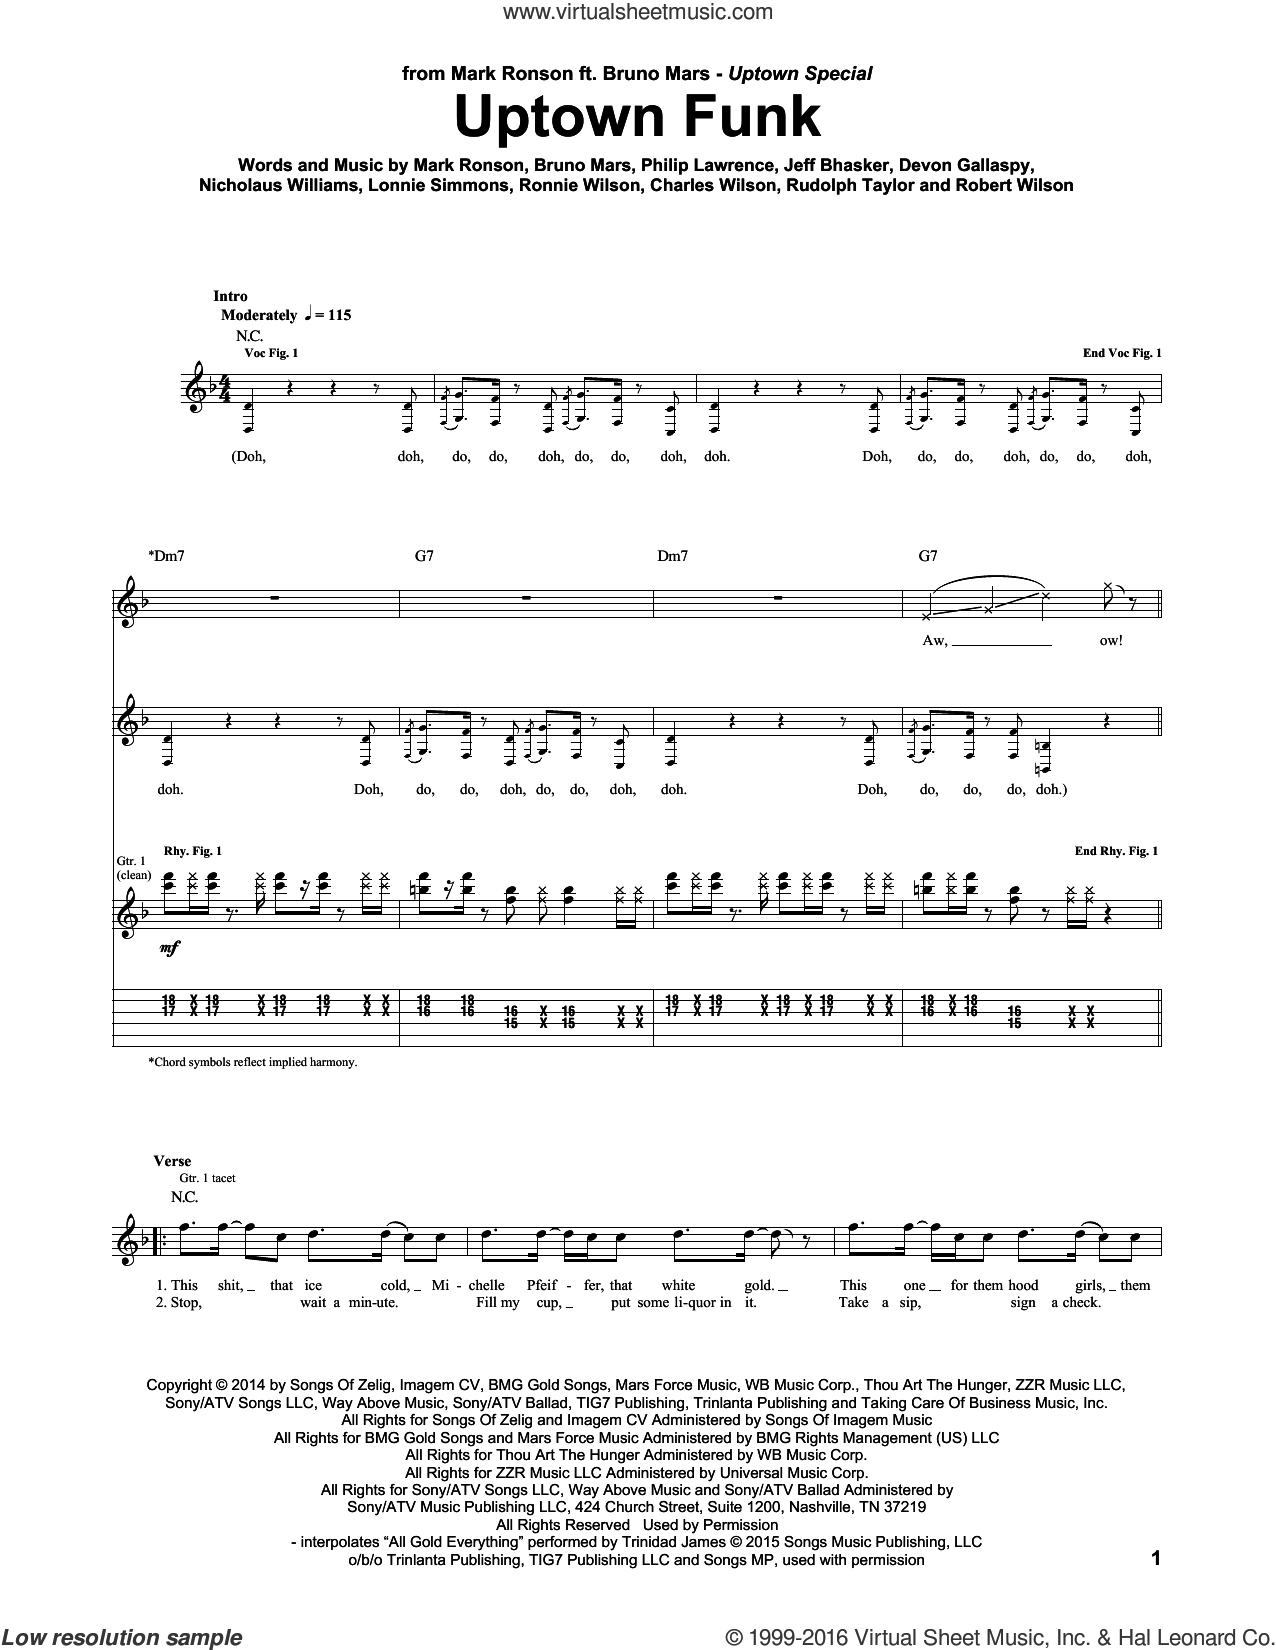 Uptown Funk (feat. Bruno Mars) sheet music for guitar (tablature) by Mark Ronson, Mark Ronson ft. Bruno Mars, Bruno Mars, Devon Gallaspy, Jeff Bhasker, Nicholaus Williams and Philip Lawrence, intermediate skill level